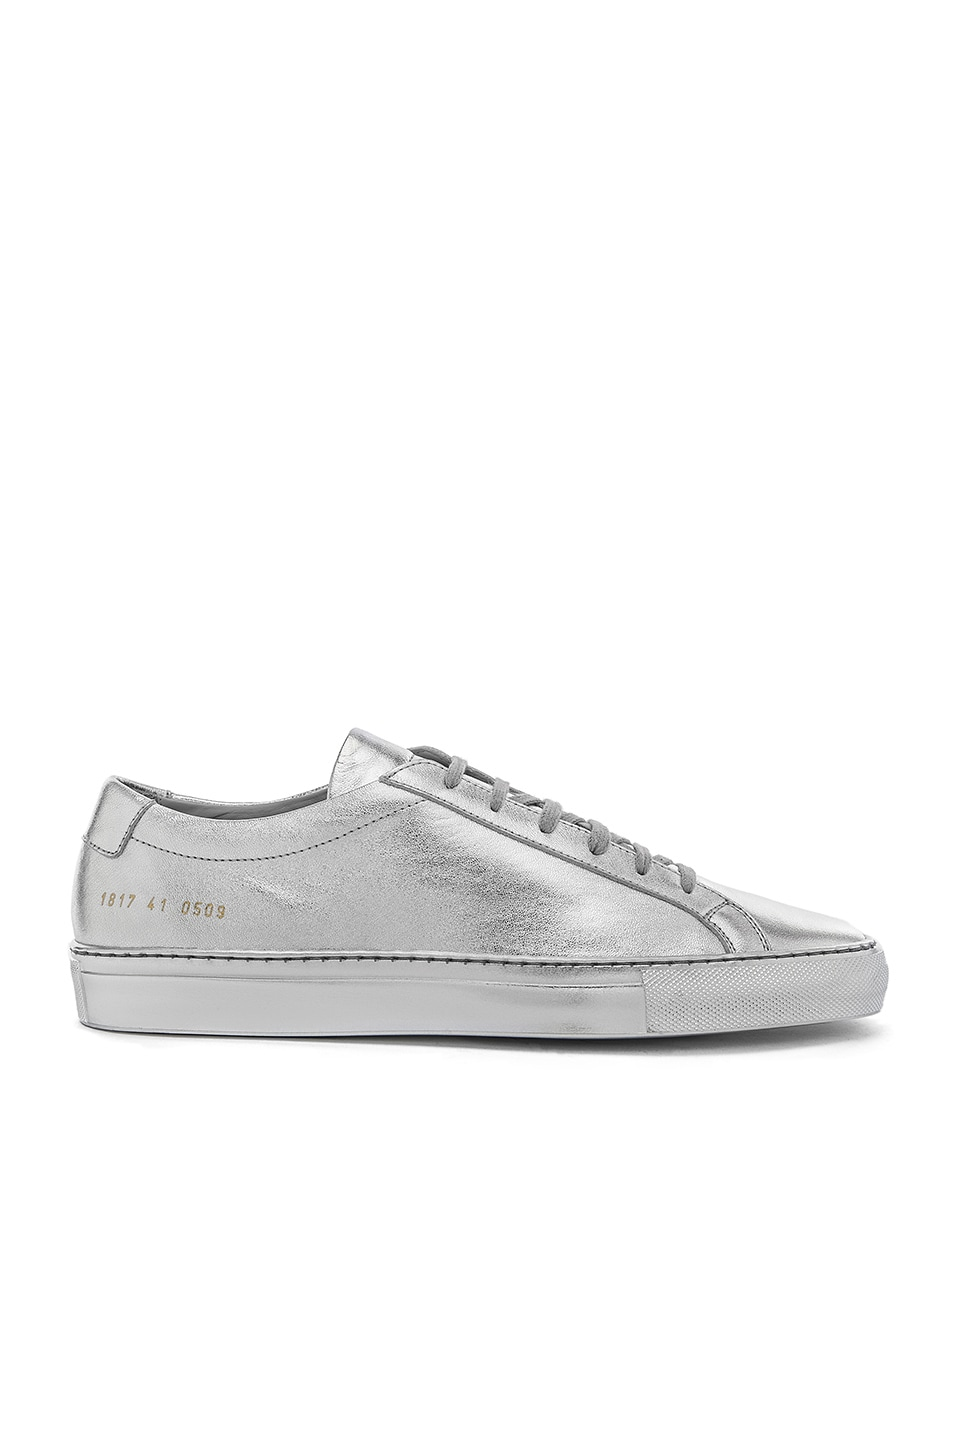 Original Achilles Silver Edition by Common Projects